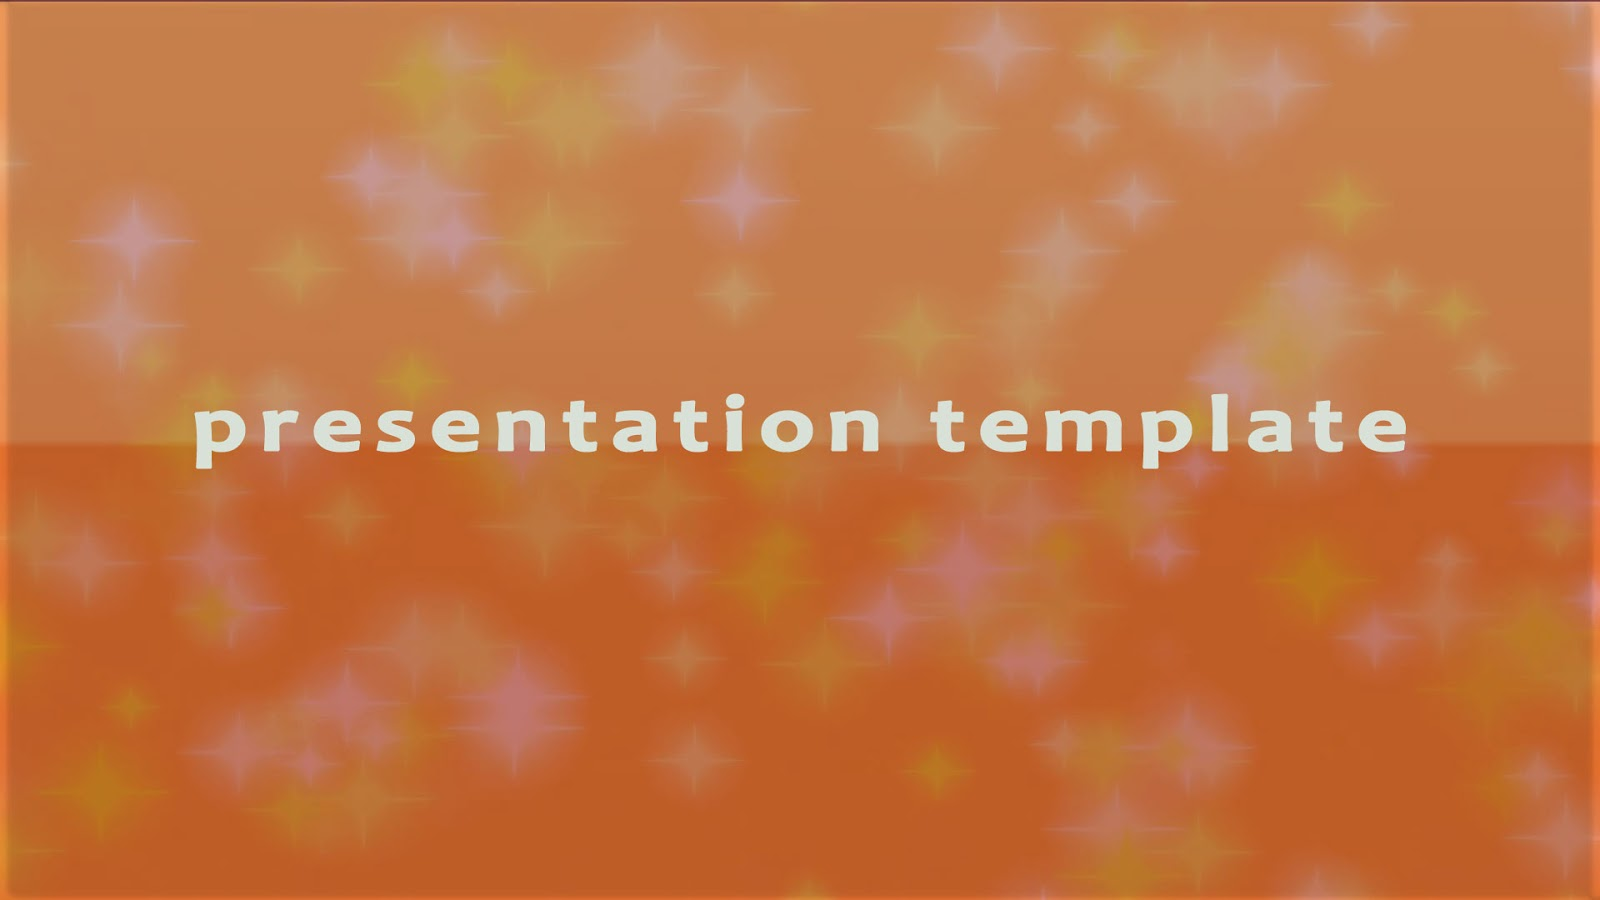 free powerpoint templates themes backgrounds | powerpoint, Powerpoint templates